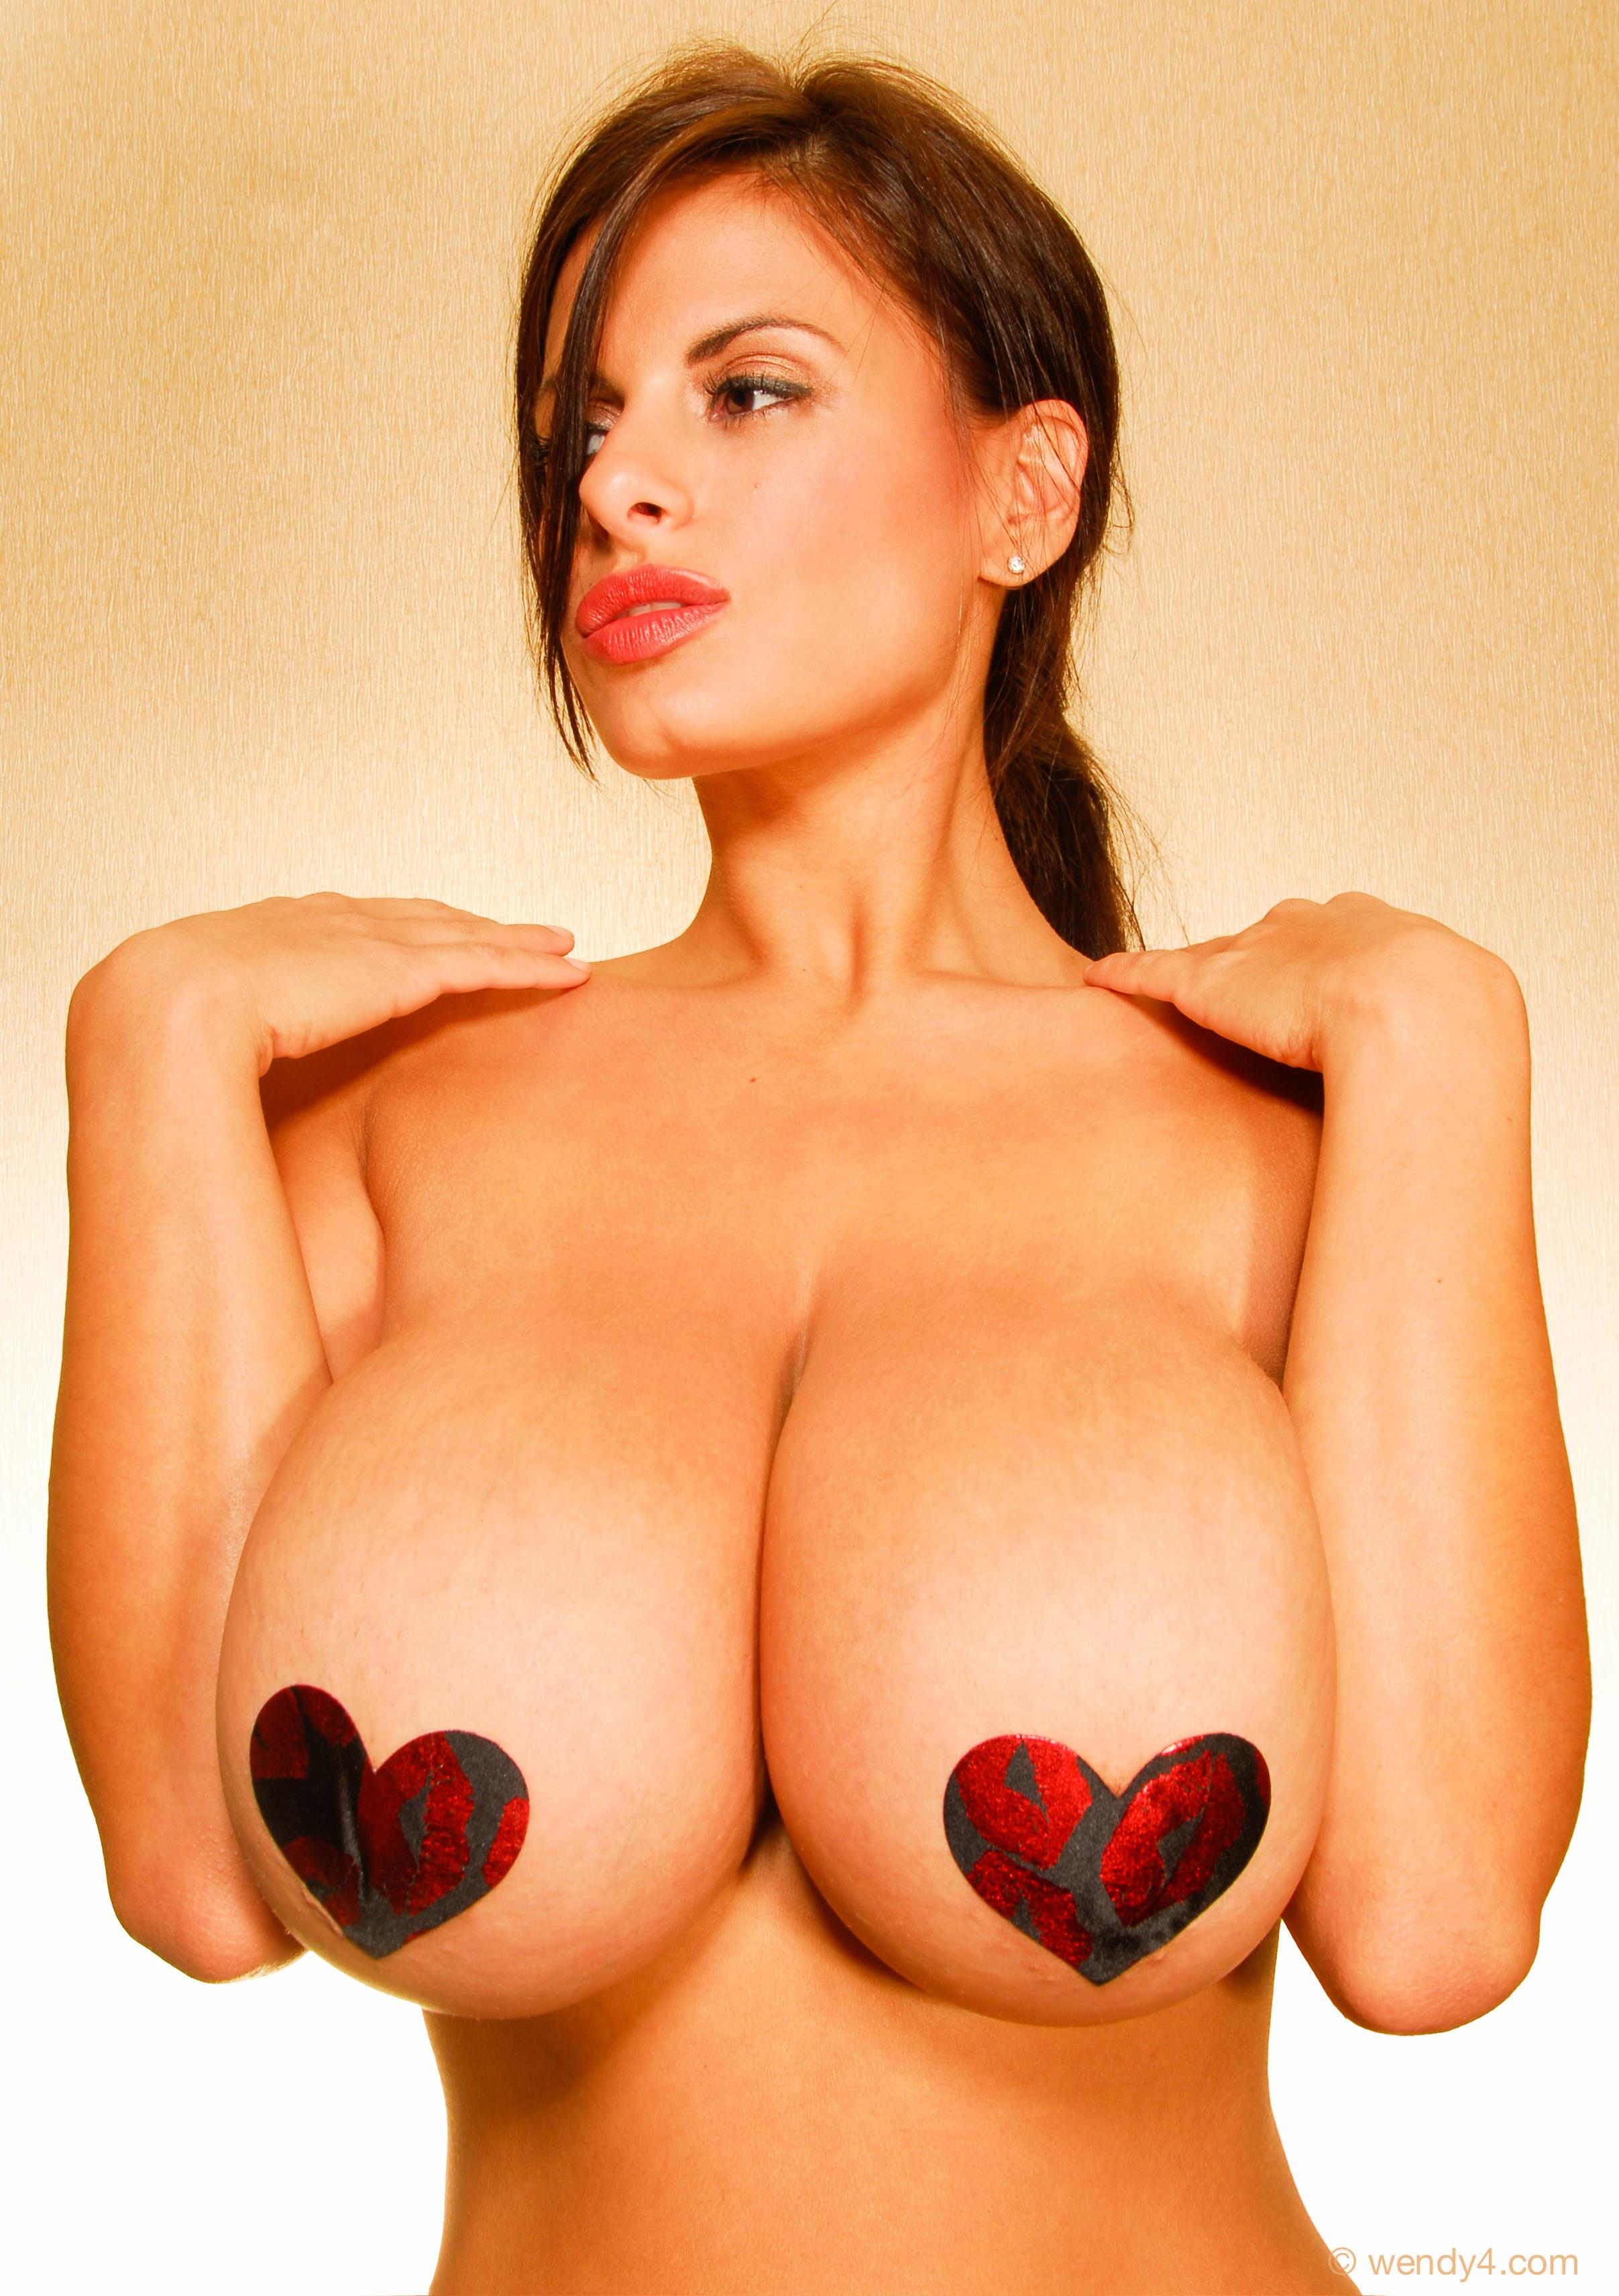 Nude pics of wendy fiore